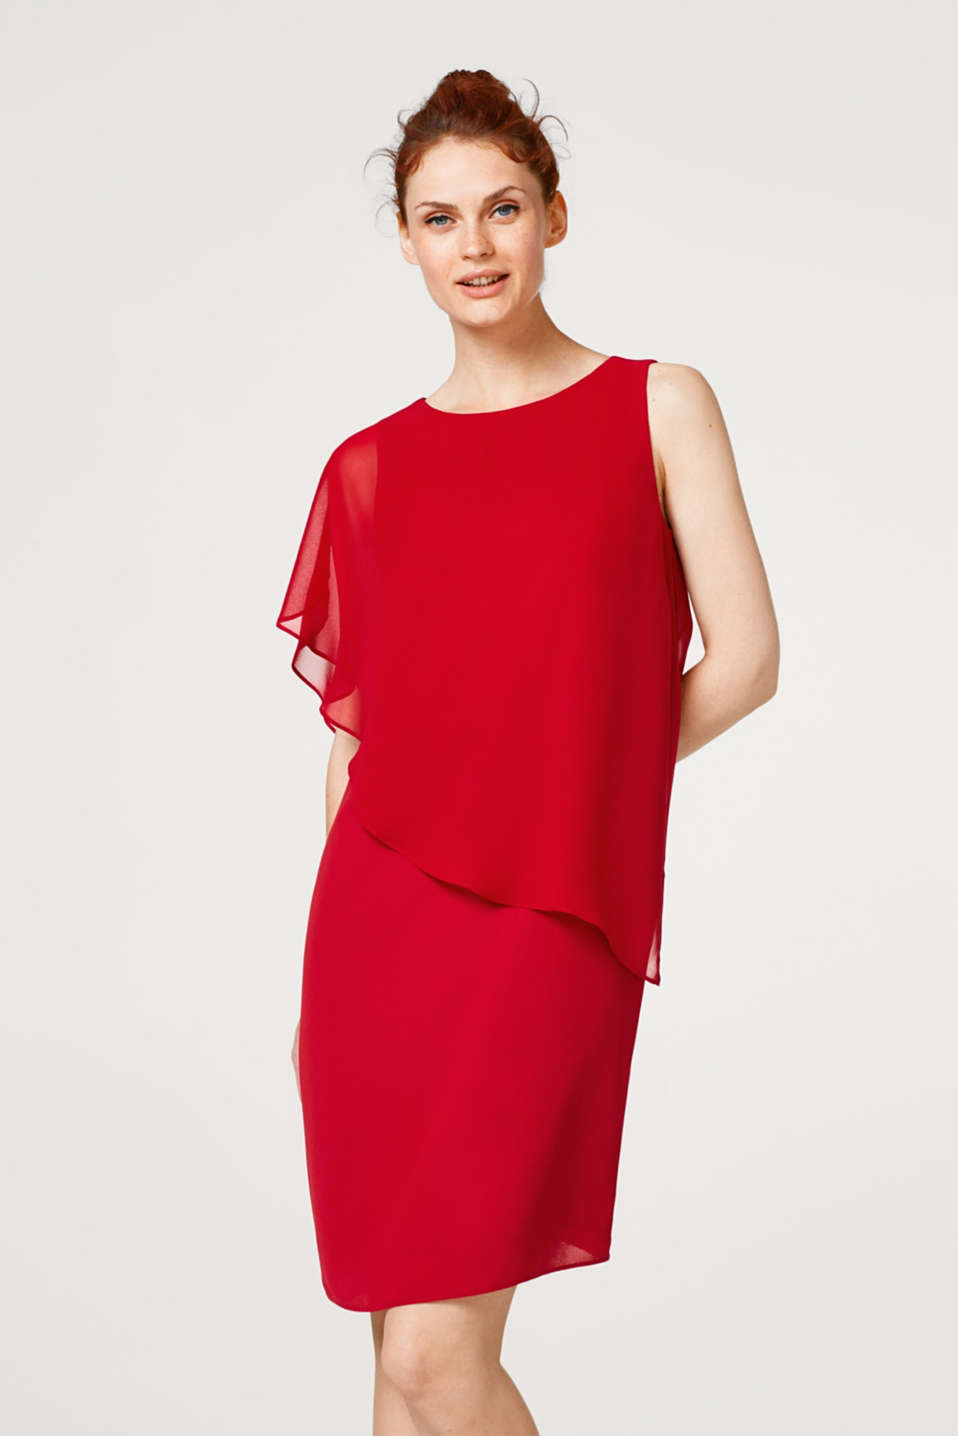 Esprit - Dress with sheer chiffon layering